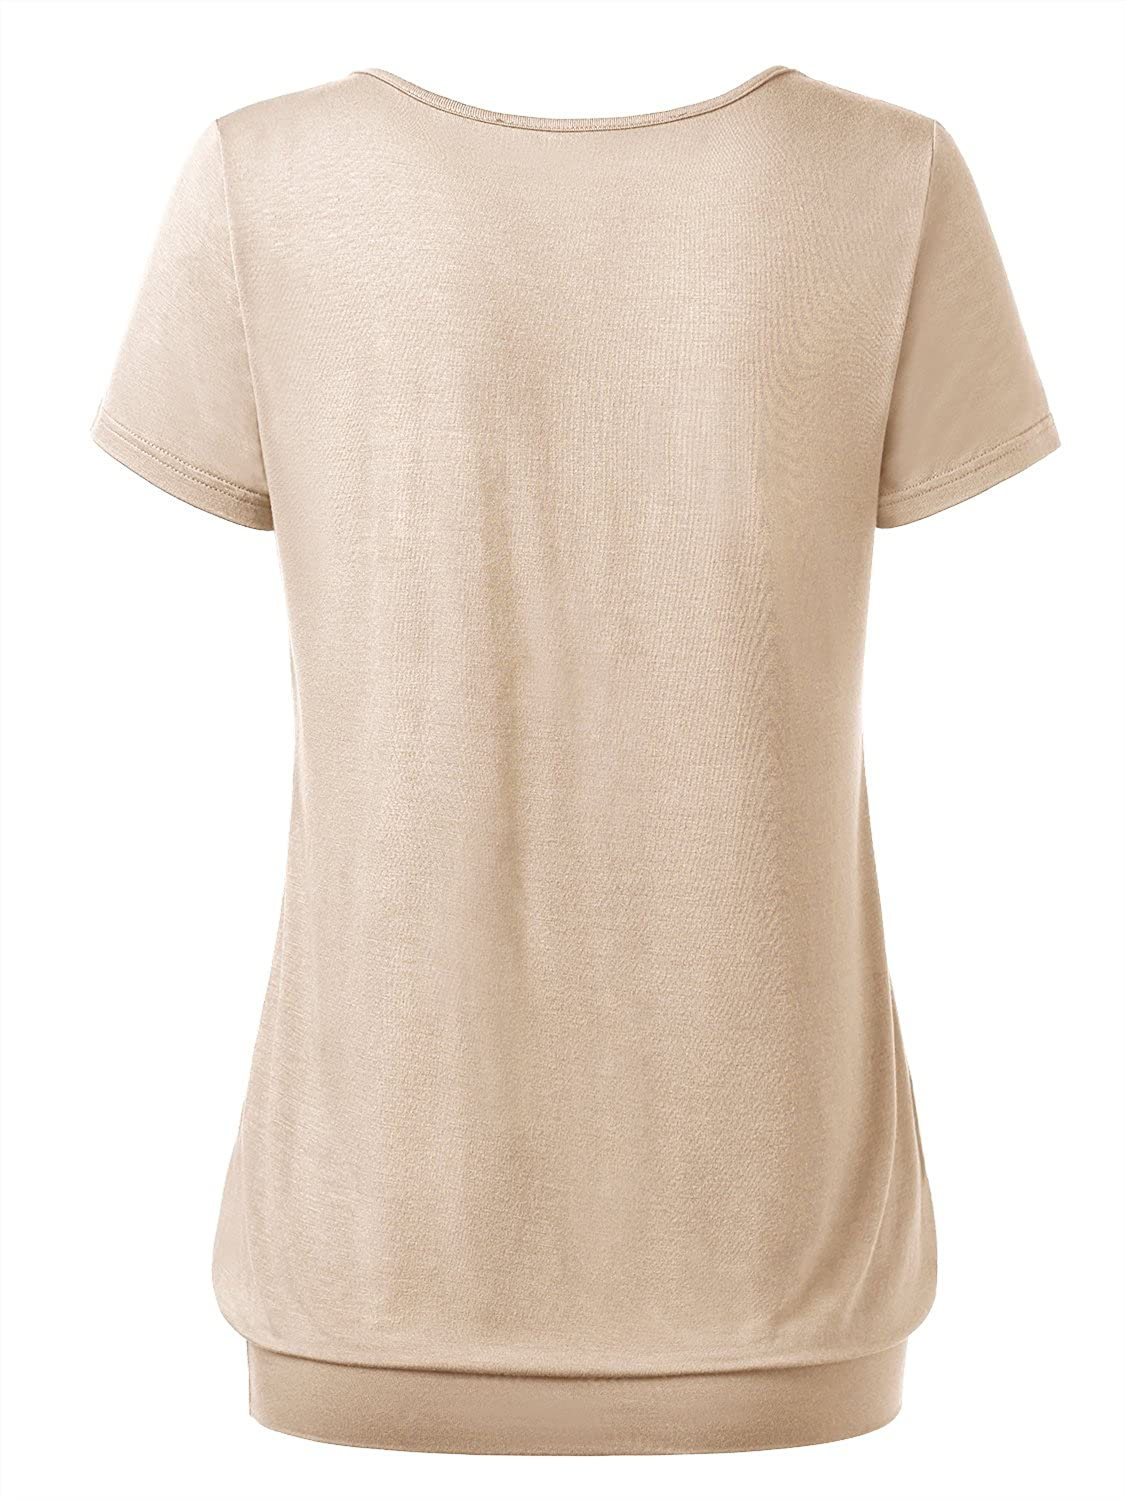 DJT Womens V Neck Ruched Front Casual Short Sleeve Jersey Tops